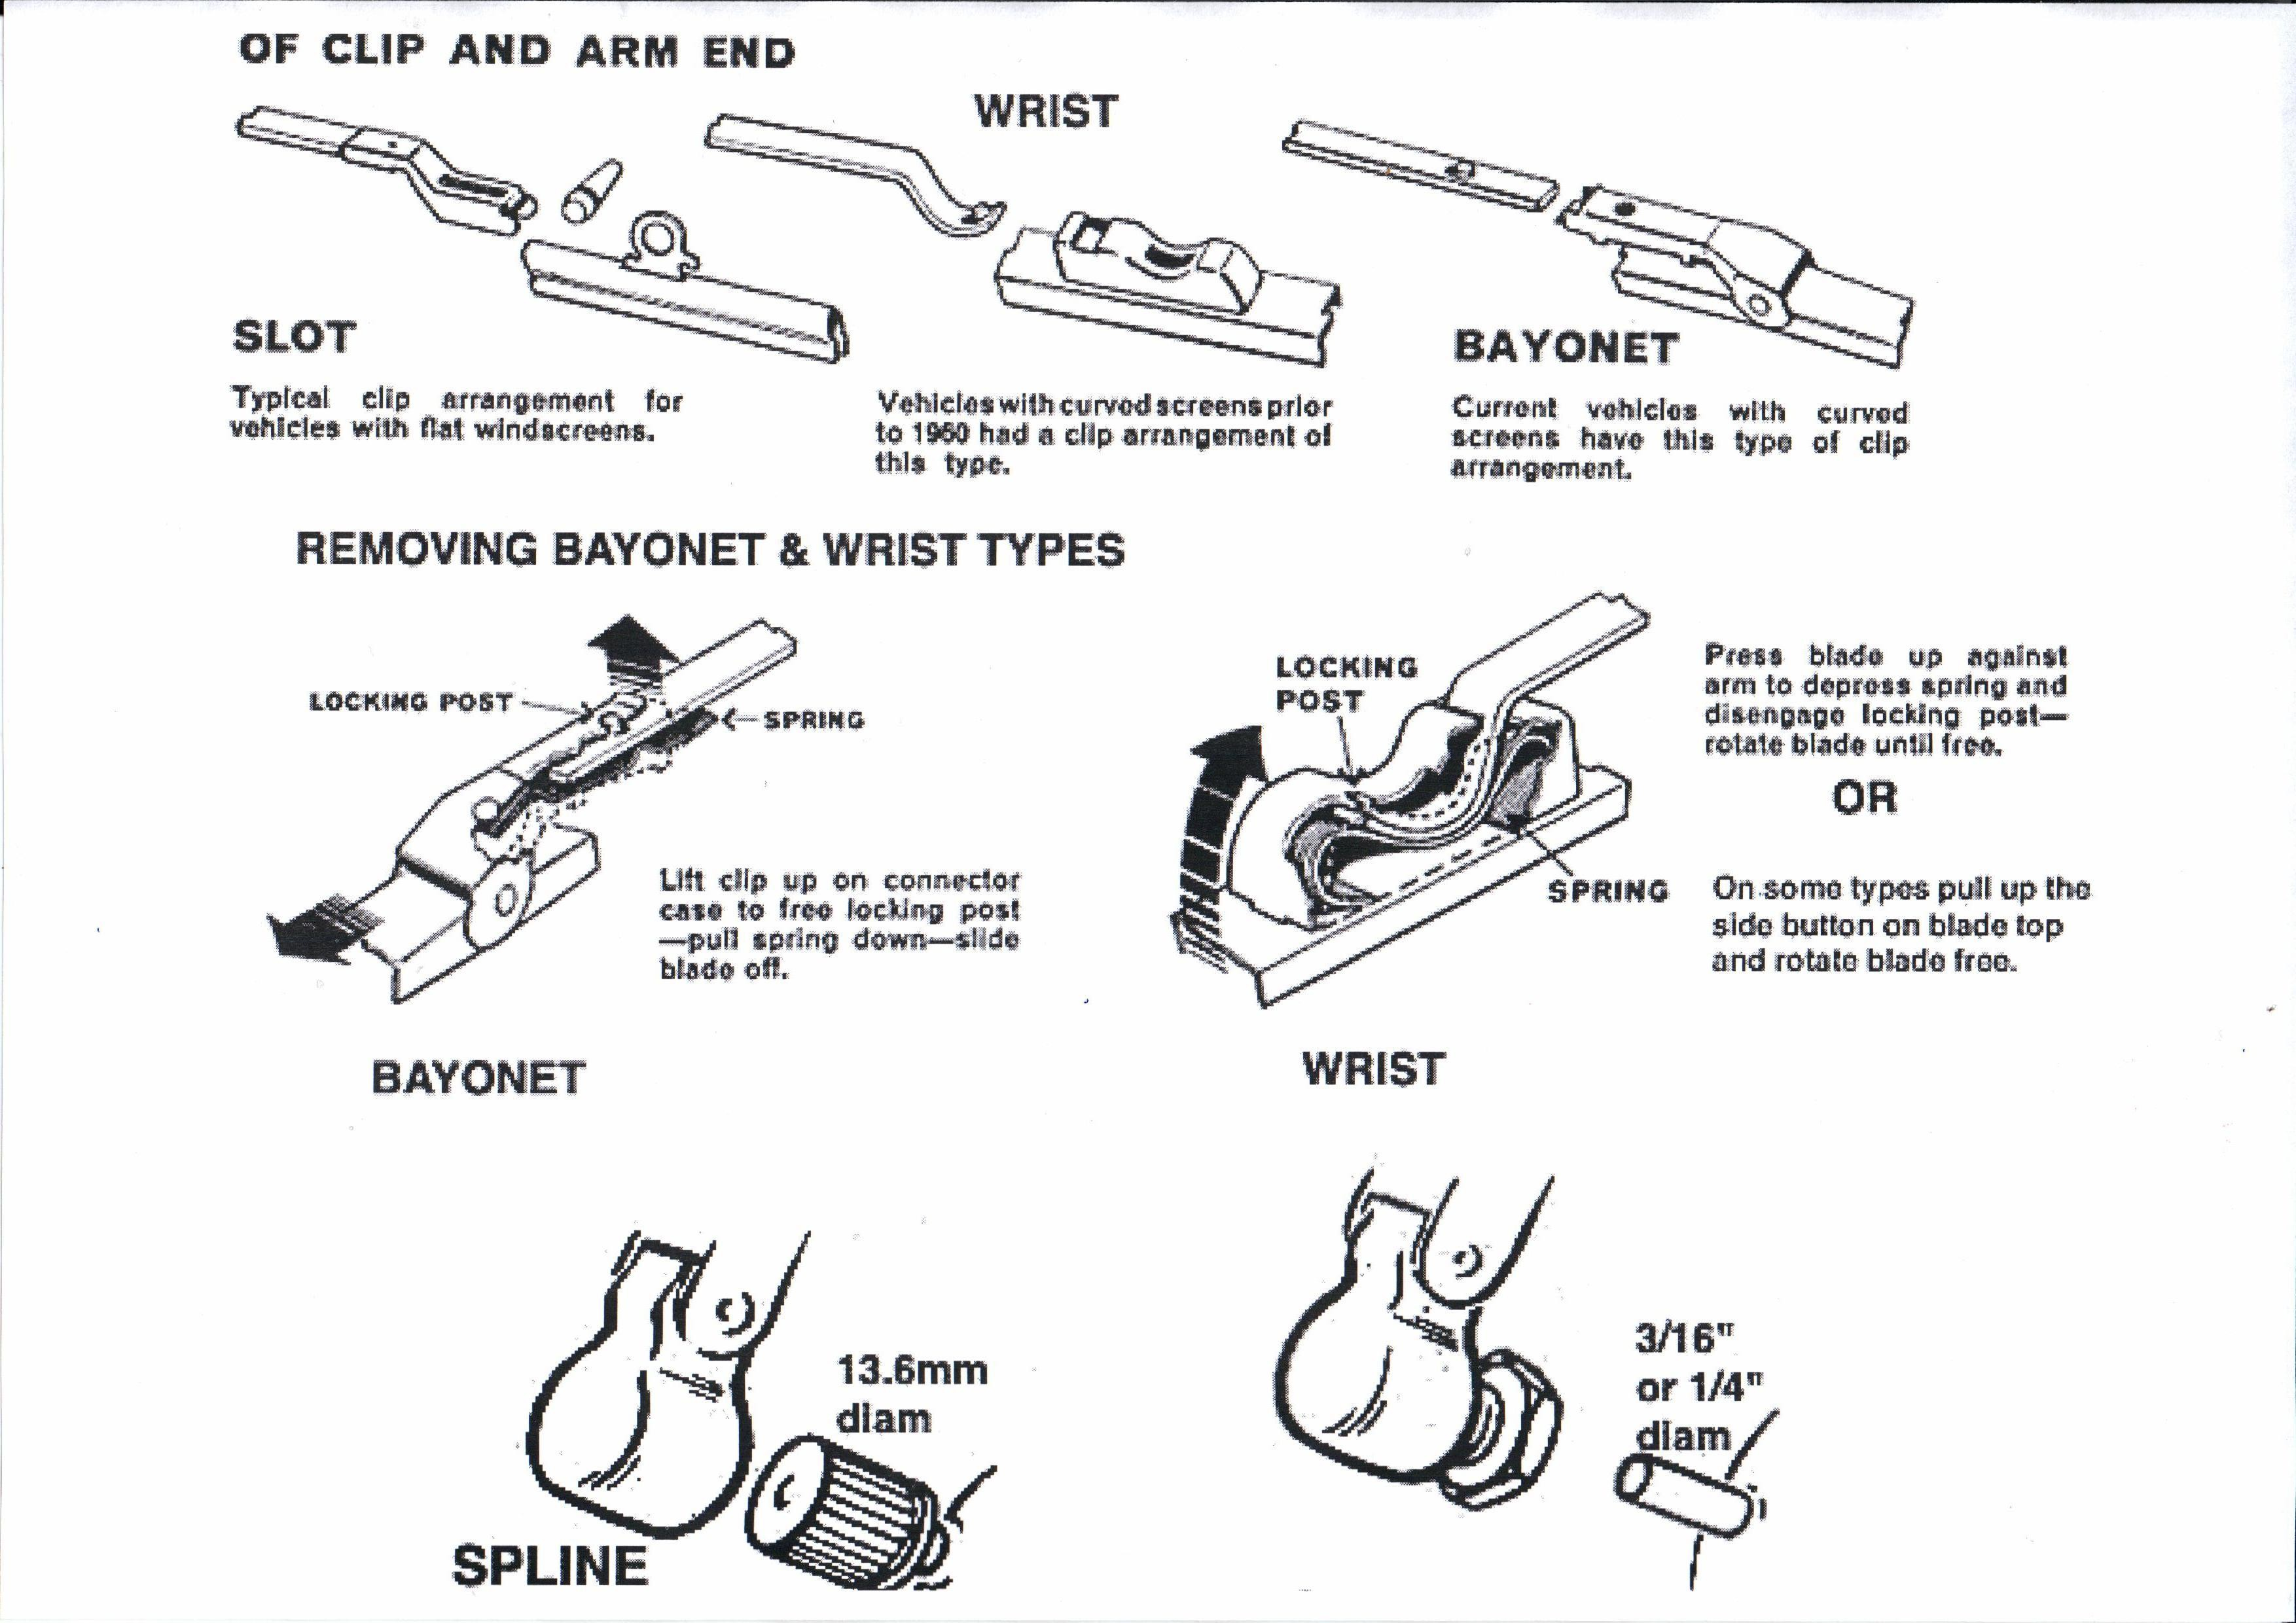 wiper arm - wrist-shaft